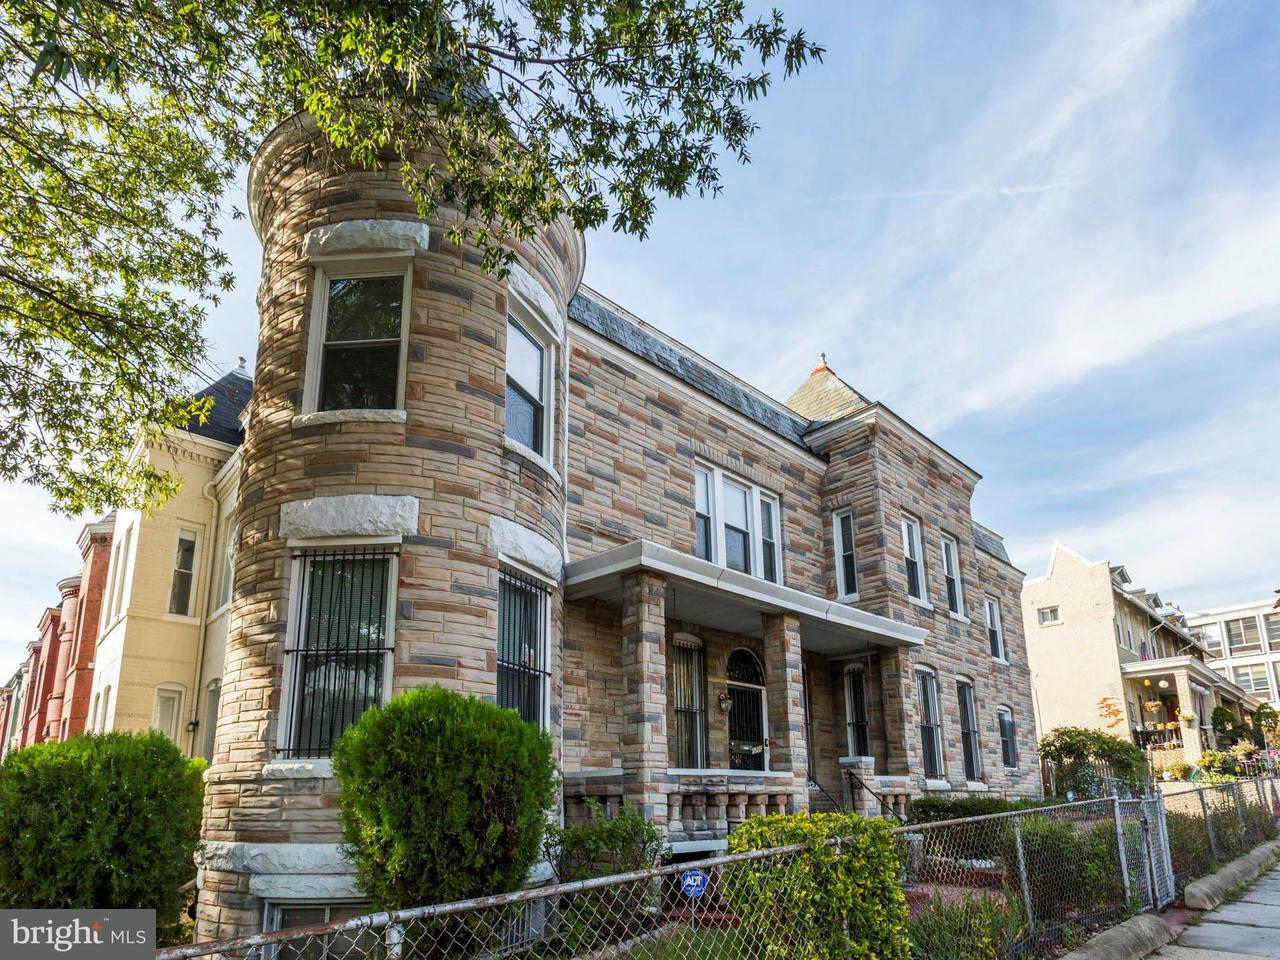 Townhouse for Sale at 1700 1ST ST NE 1700 1ST ST NE Washington, District Of Columbia 20002 United States